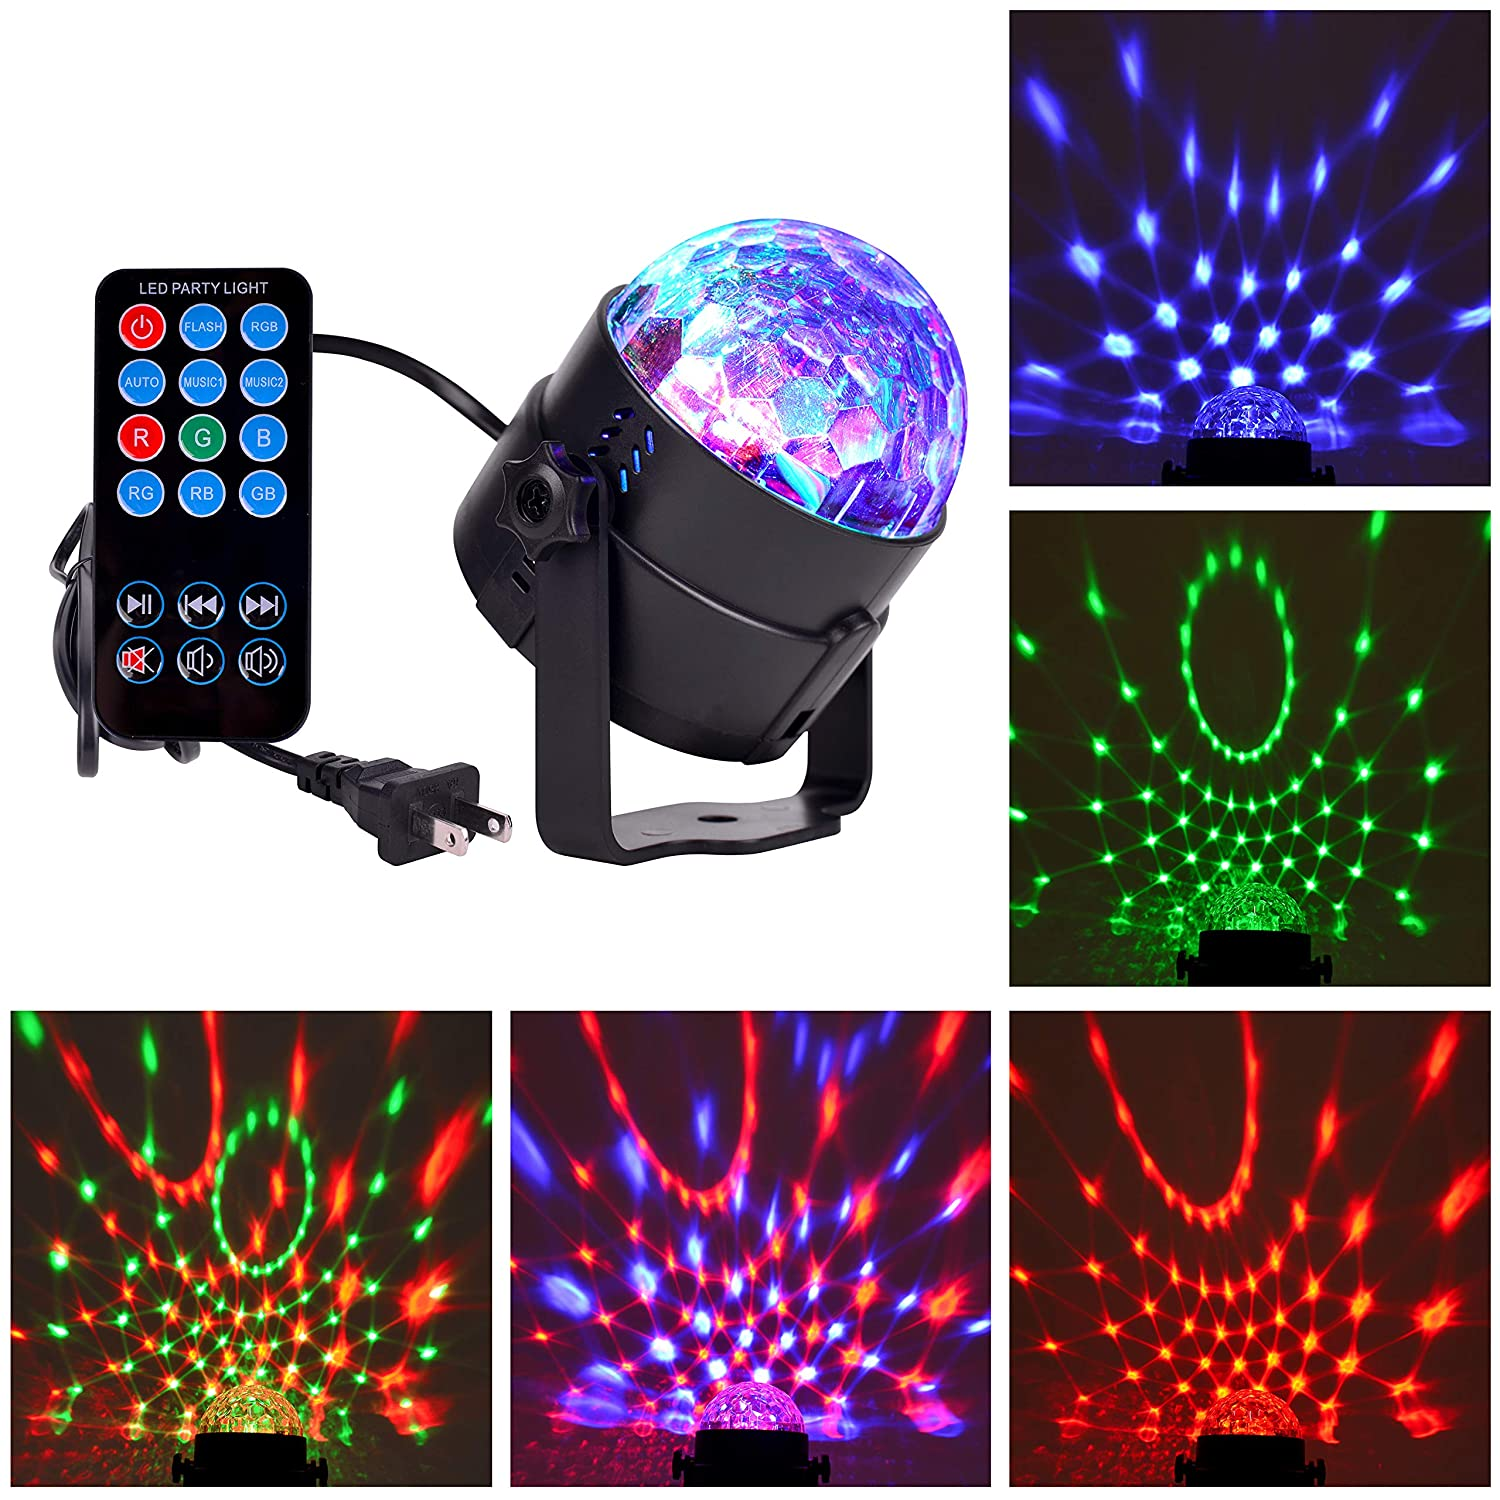 Lezoey Sound Activated Strobe Party Lights with Remote Control RGB Disco Dance Ball Light LED Stage Lamp for Birthday DJ Kids Xmas Club Karaoke Wedding